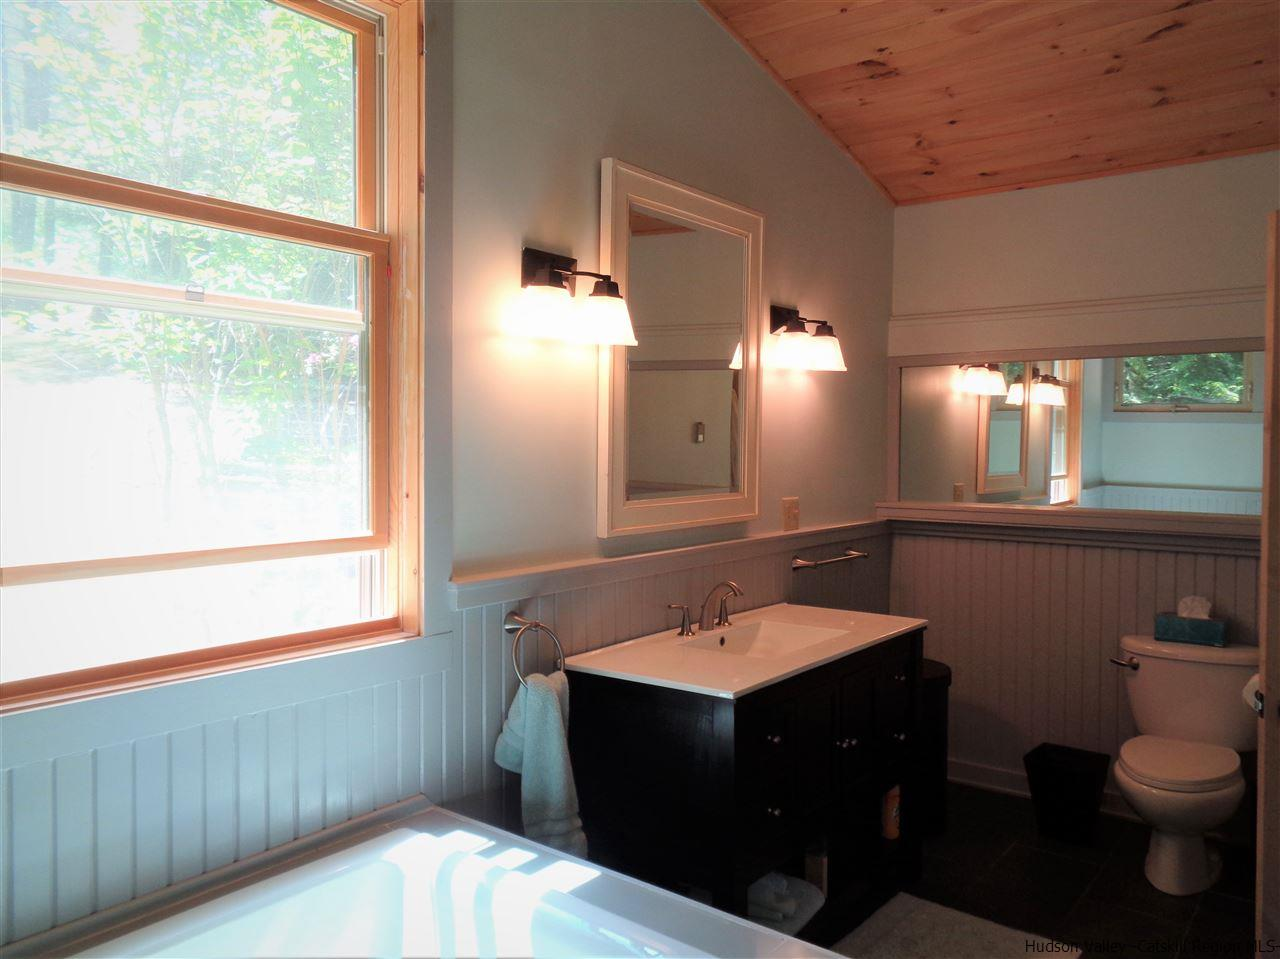 Additional photo for property listing at 360 LITTLE TIMBER Road 360 LITTLE TIMBER Road Jewett, New York 12444 United States